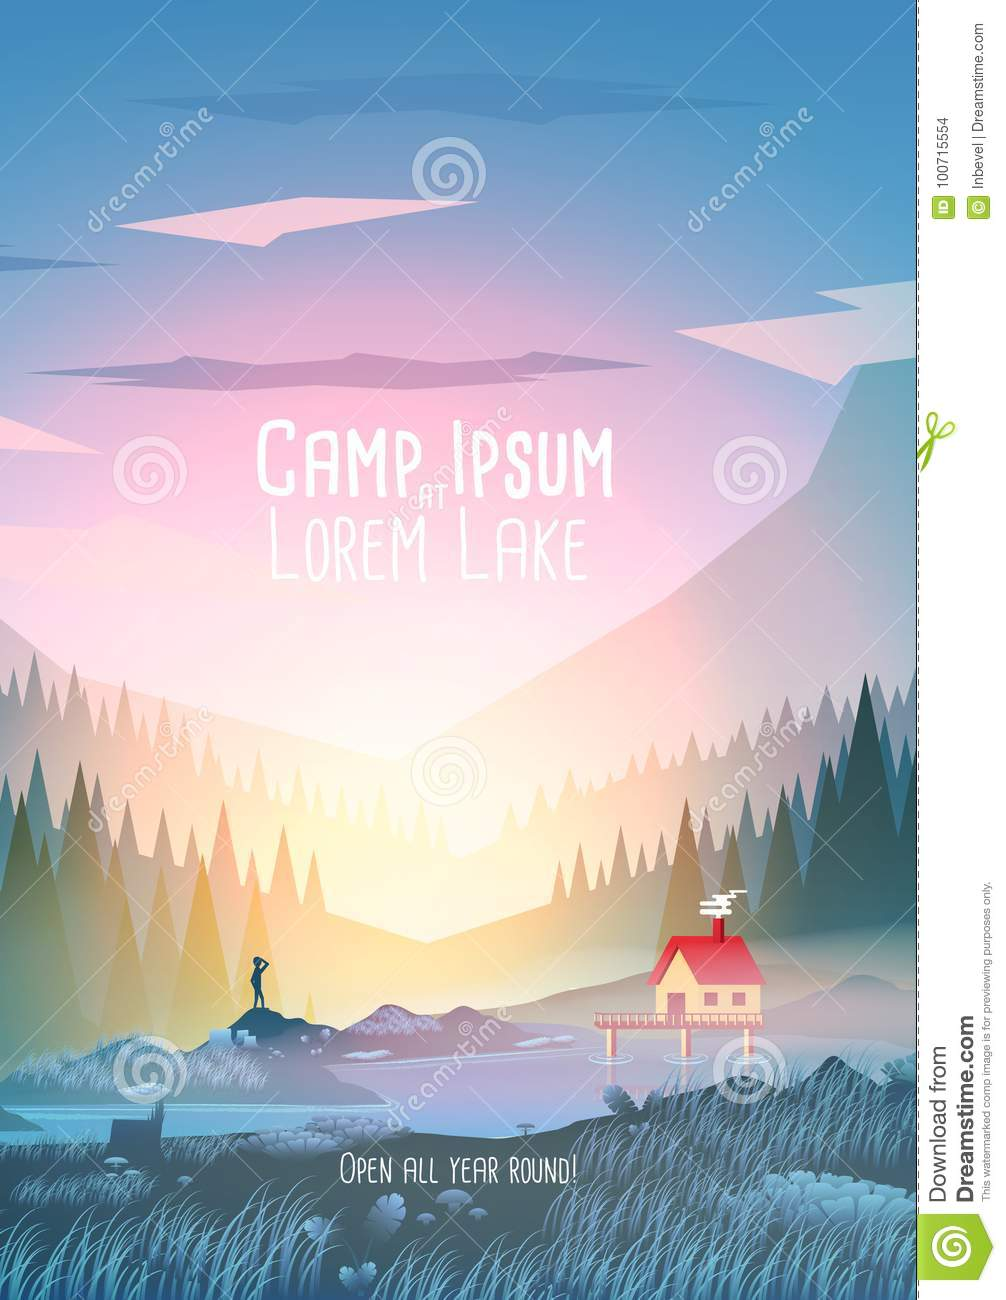 Summer Camp Vacation Poster with Mountain Lake - Vector Illustration